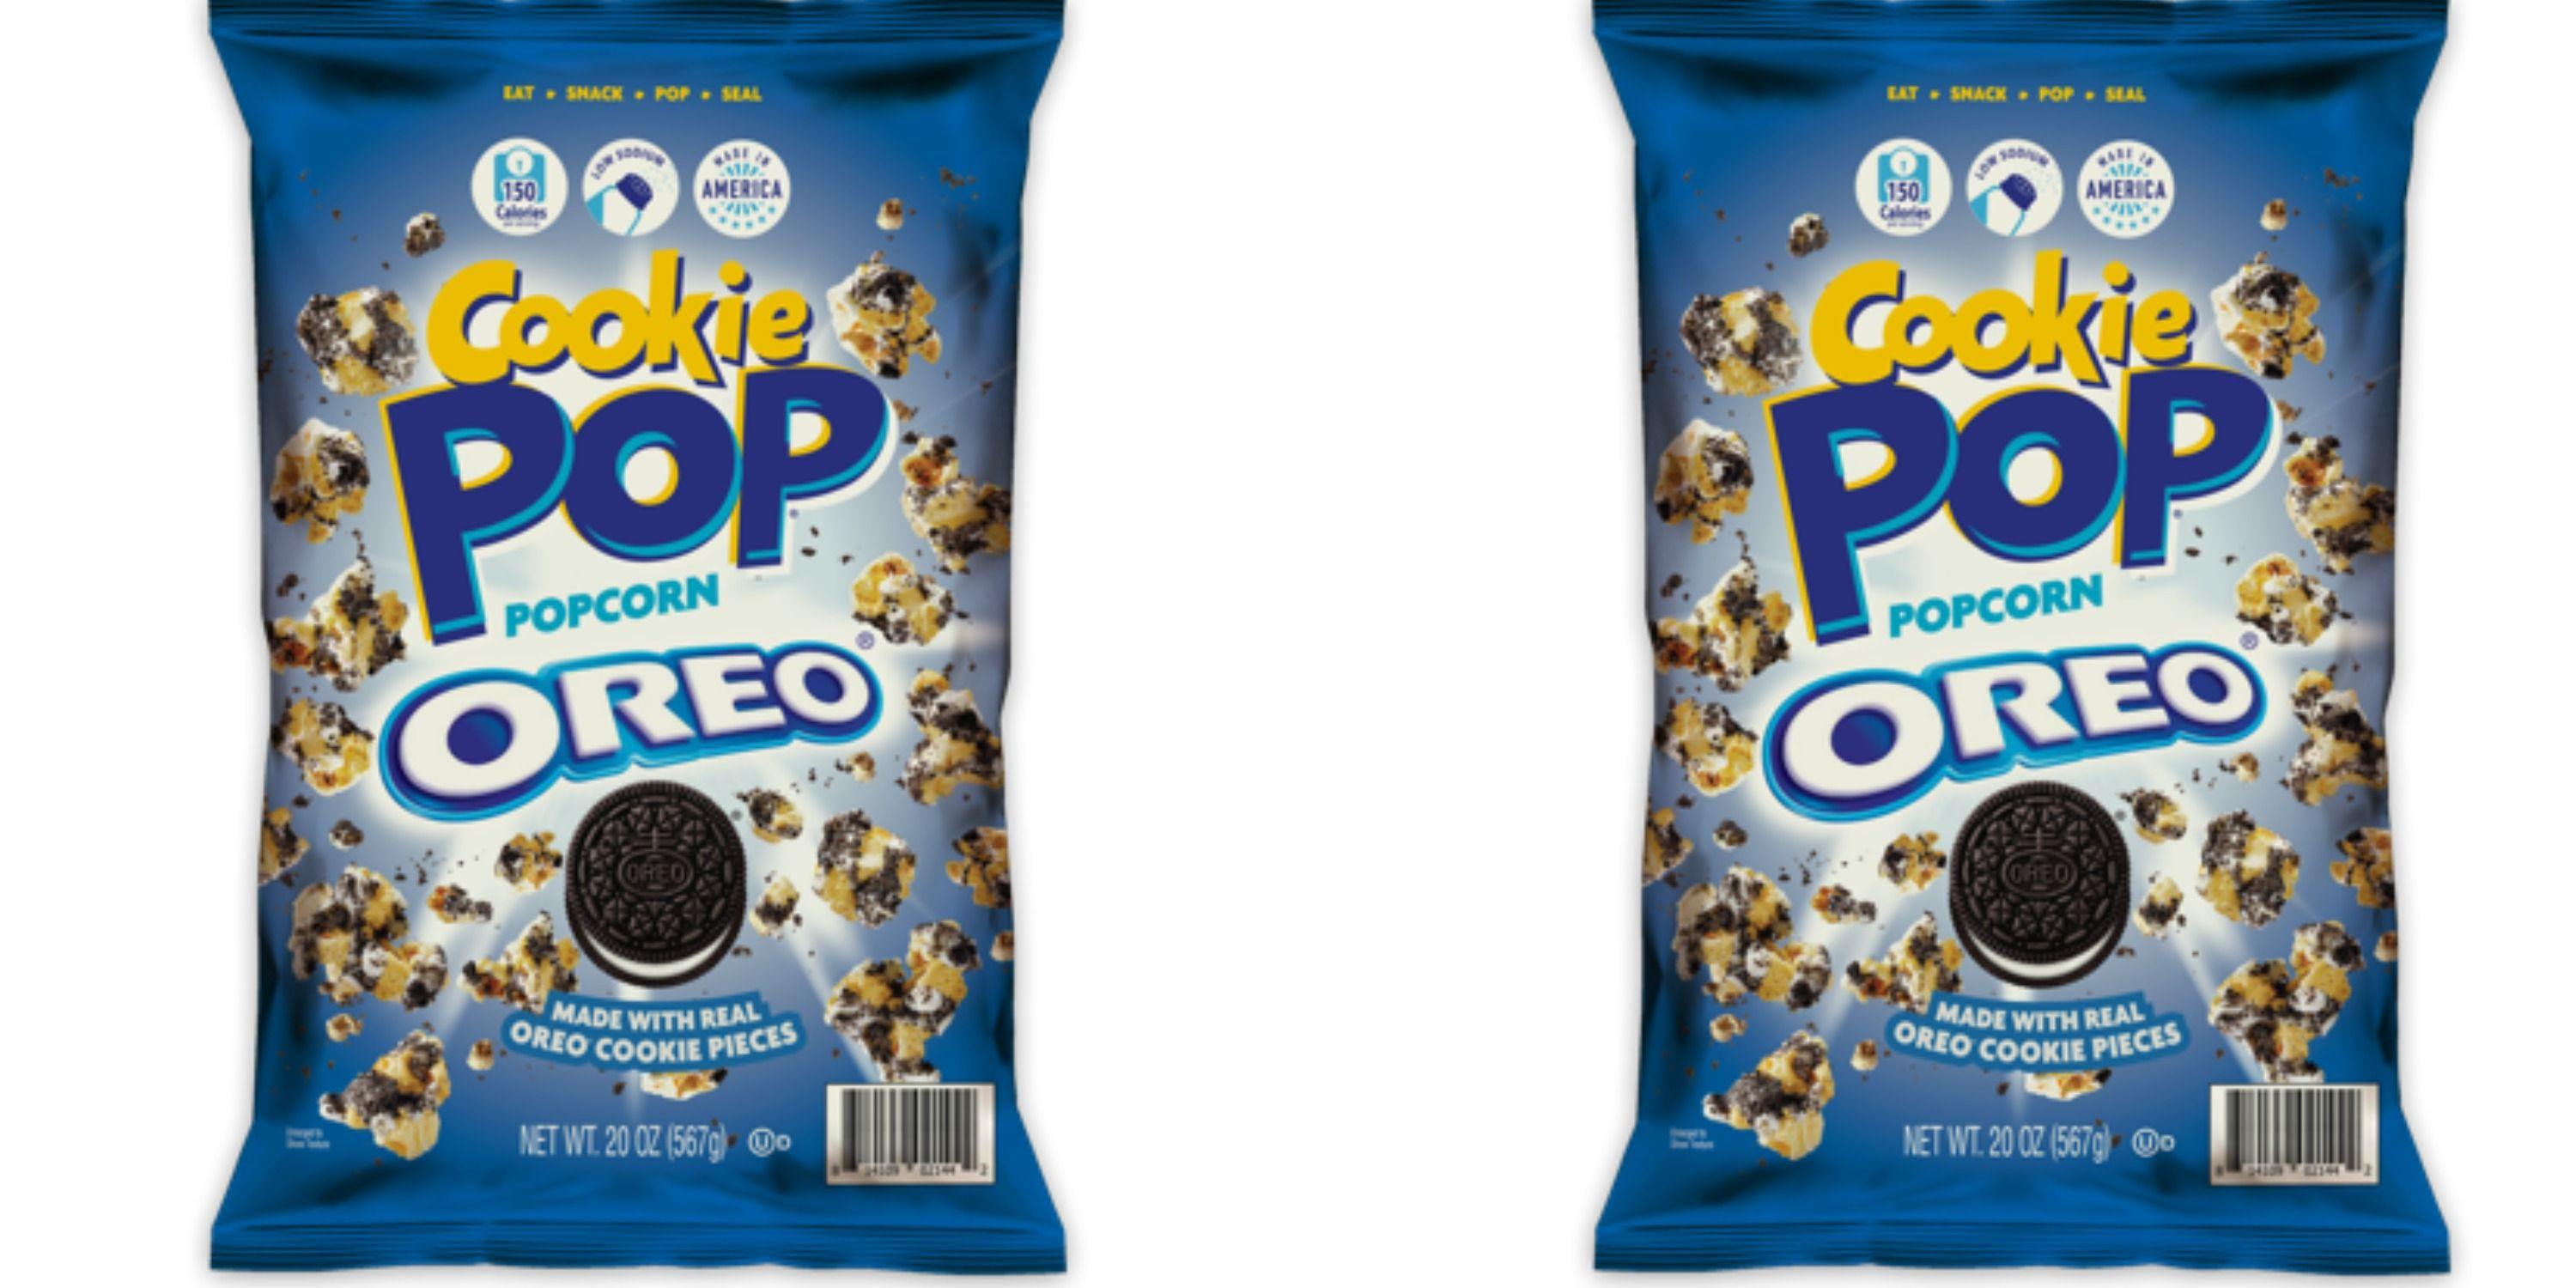 Sam's Club Is Selling Popcorn Covered in Oreo Cookies and It Makes the Perfect Movie Snack